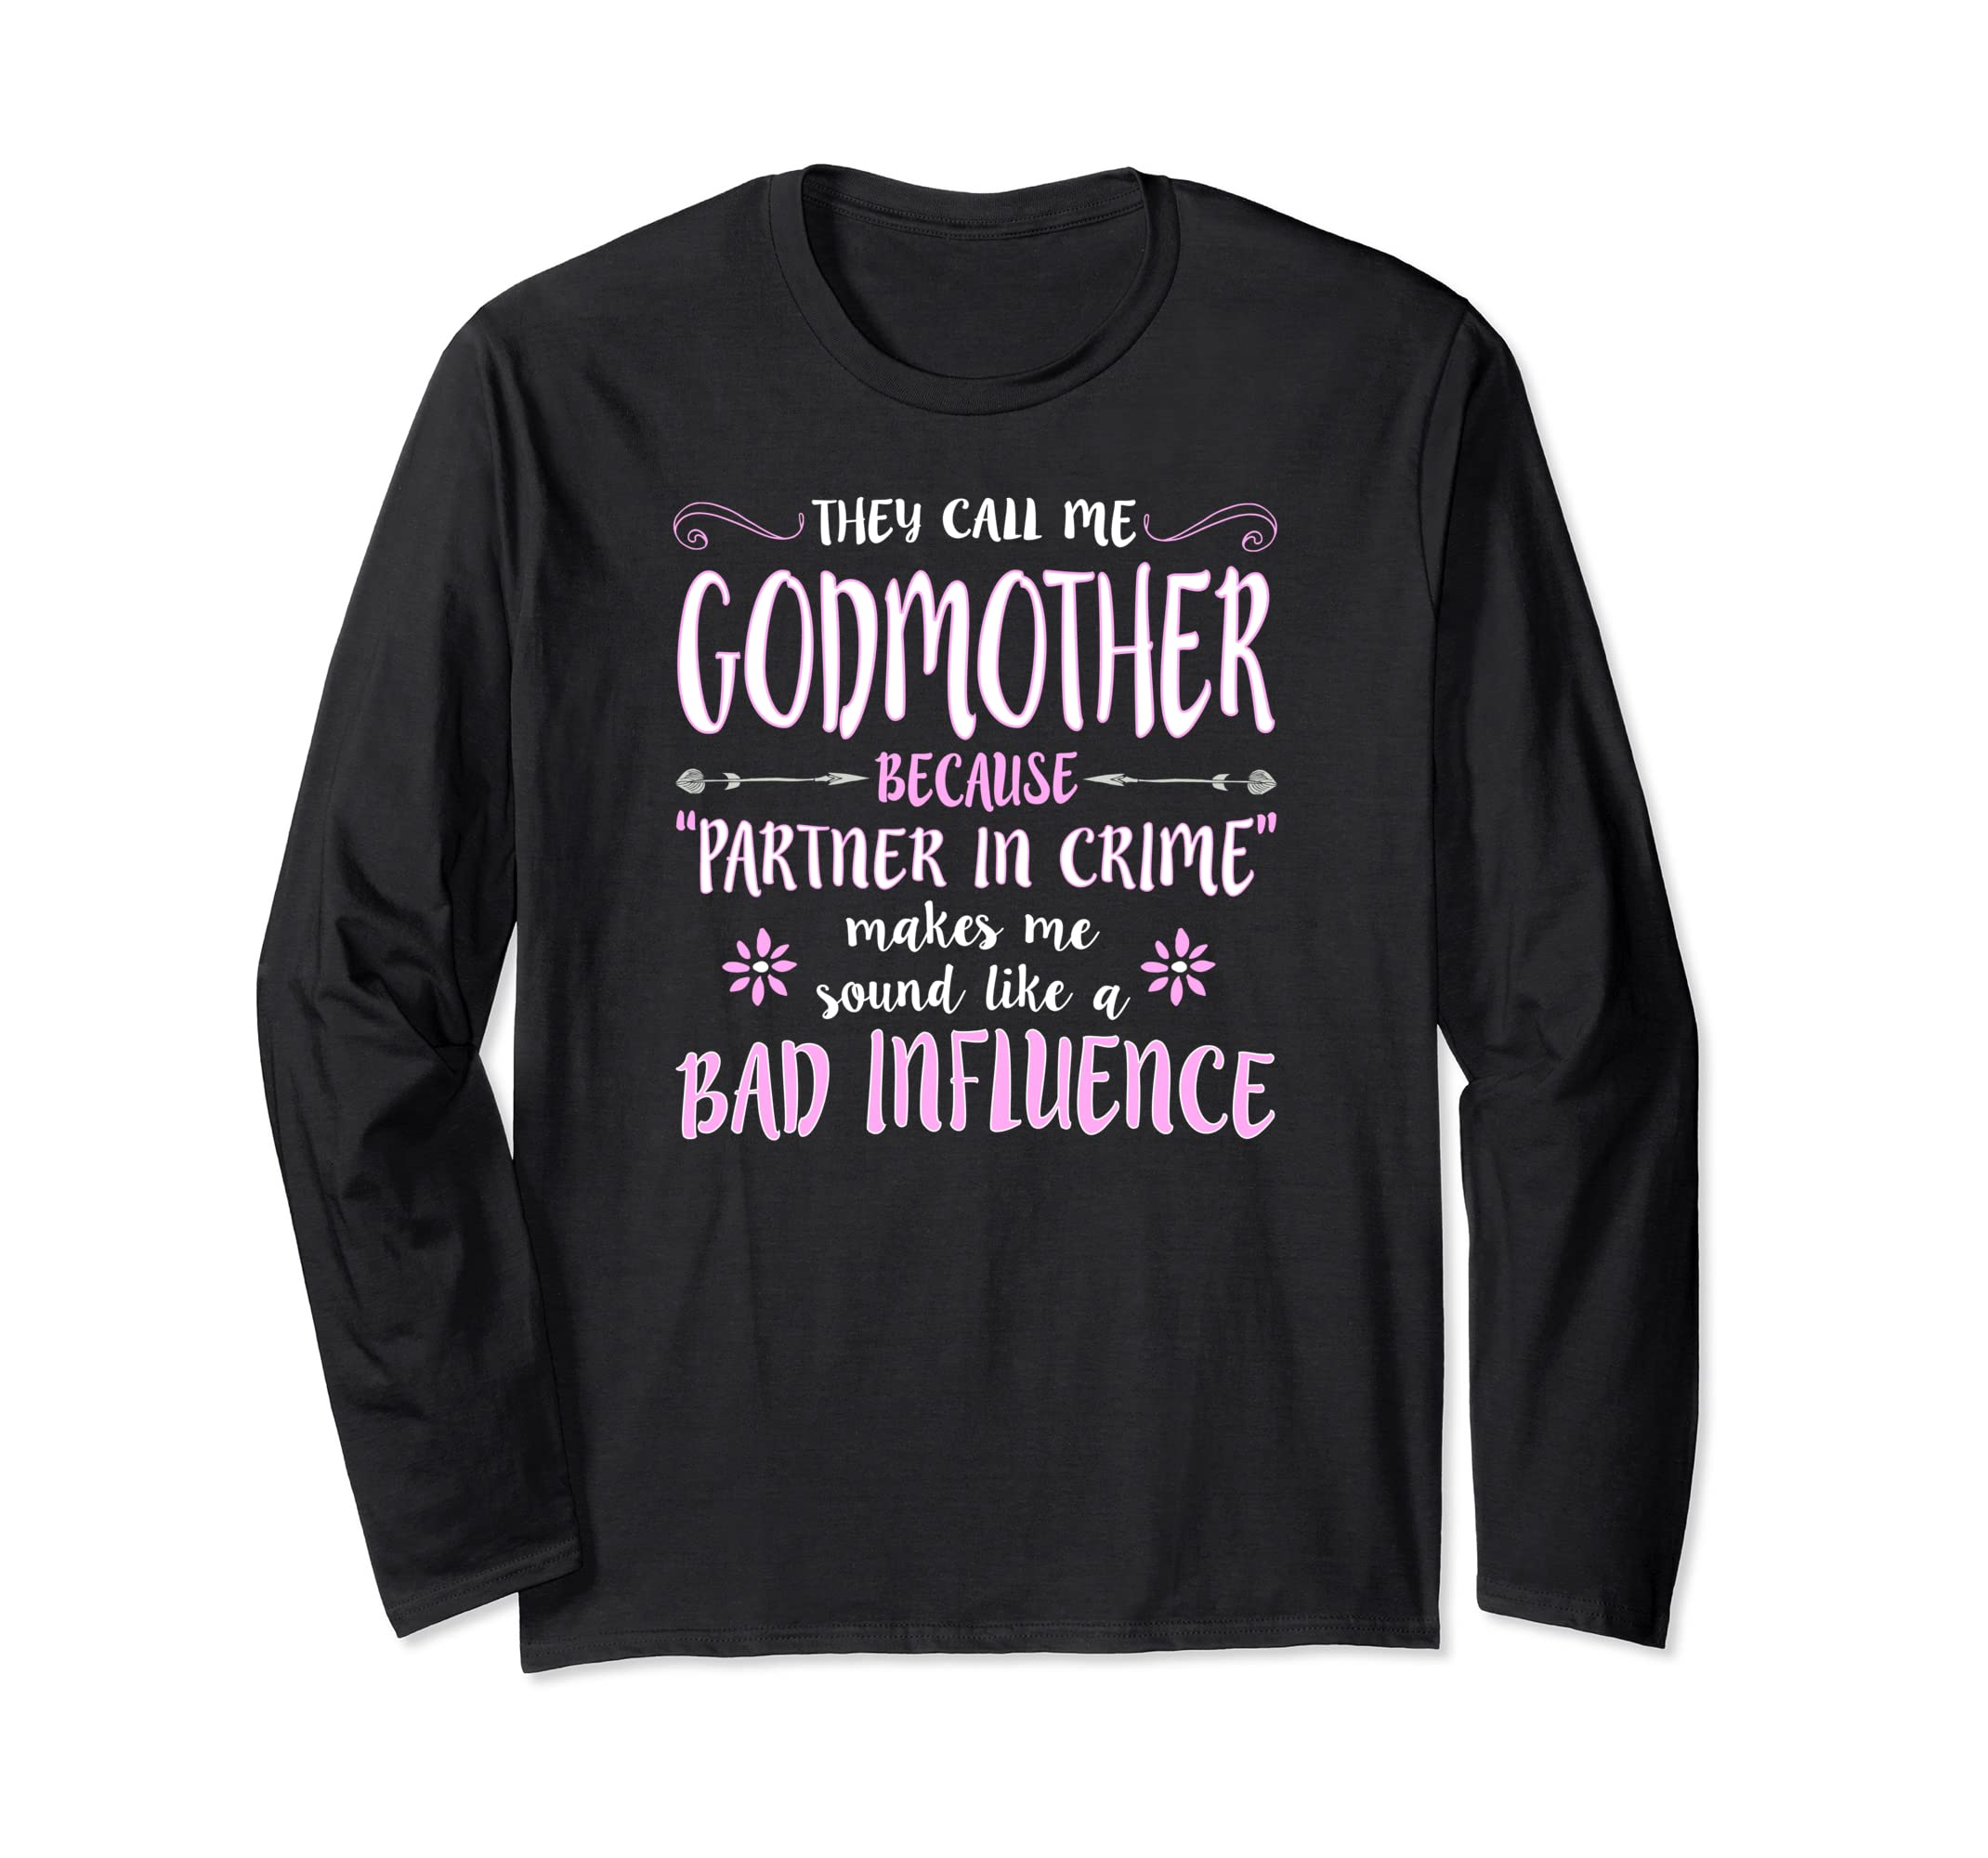 346dbb54 Amazon.com: They Call Me Godmother Because Partner LONG SLEEVE T-Shirt:  Clothing